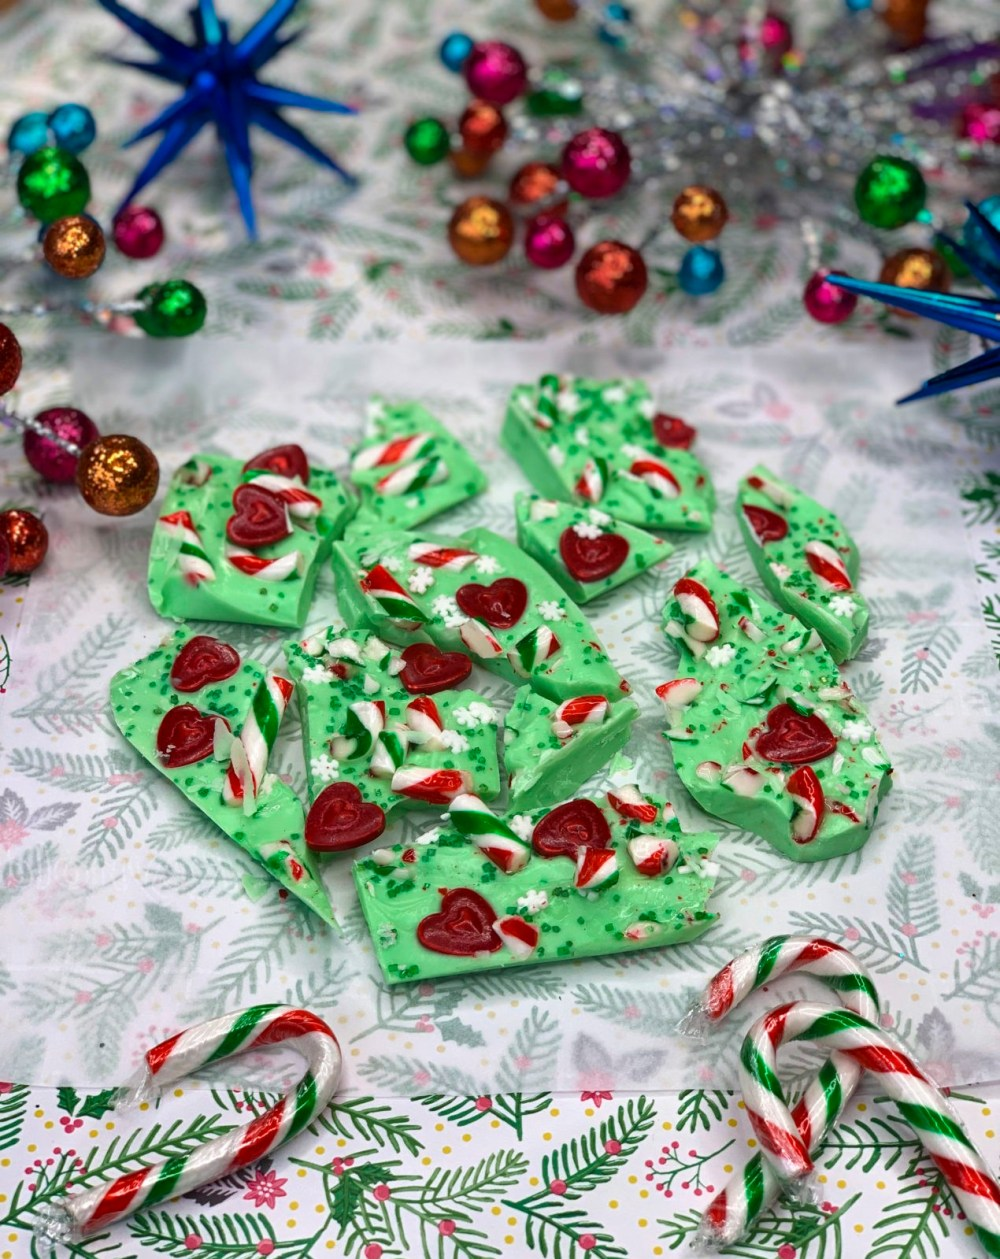 Make Chocolate Bark Themed to Classic Christmas Movies